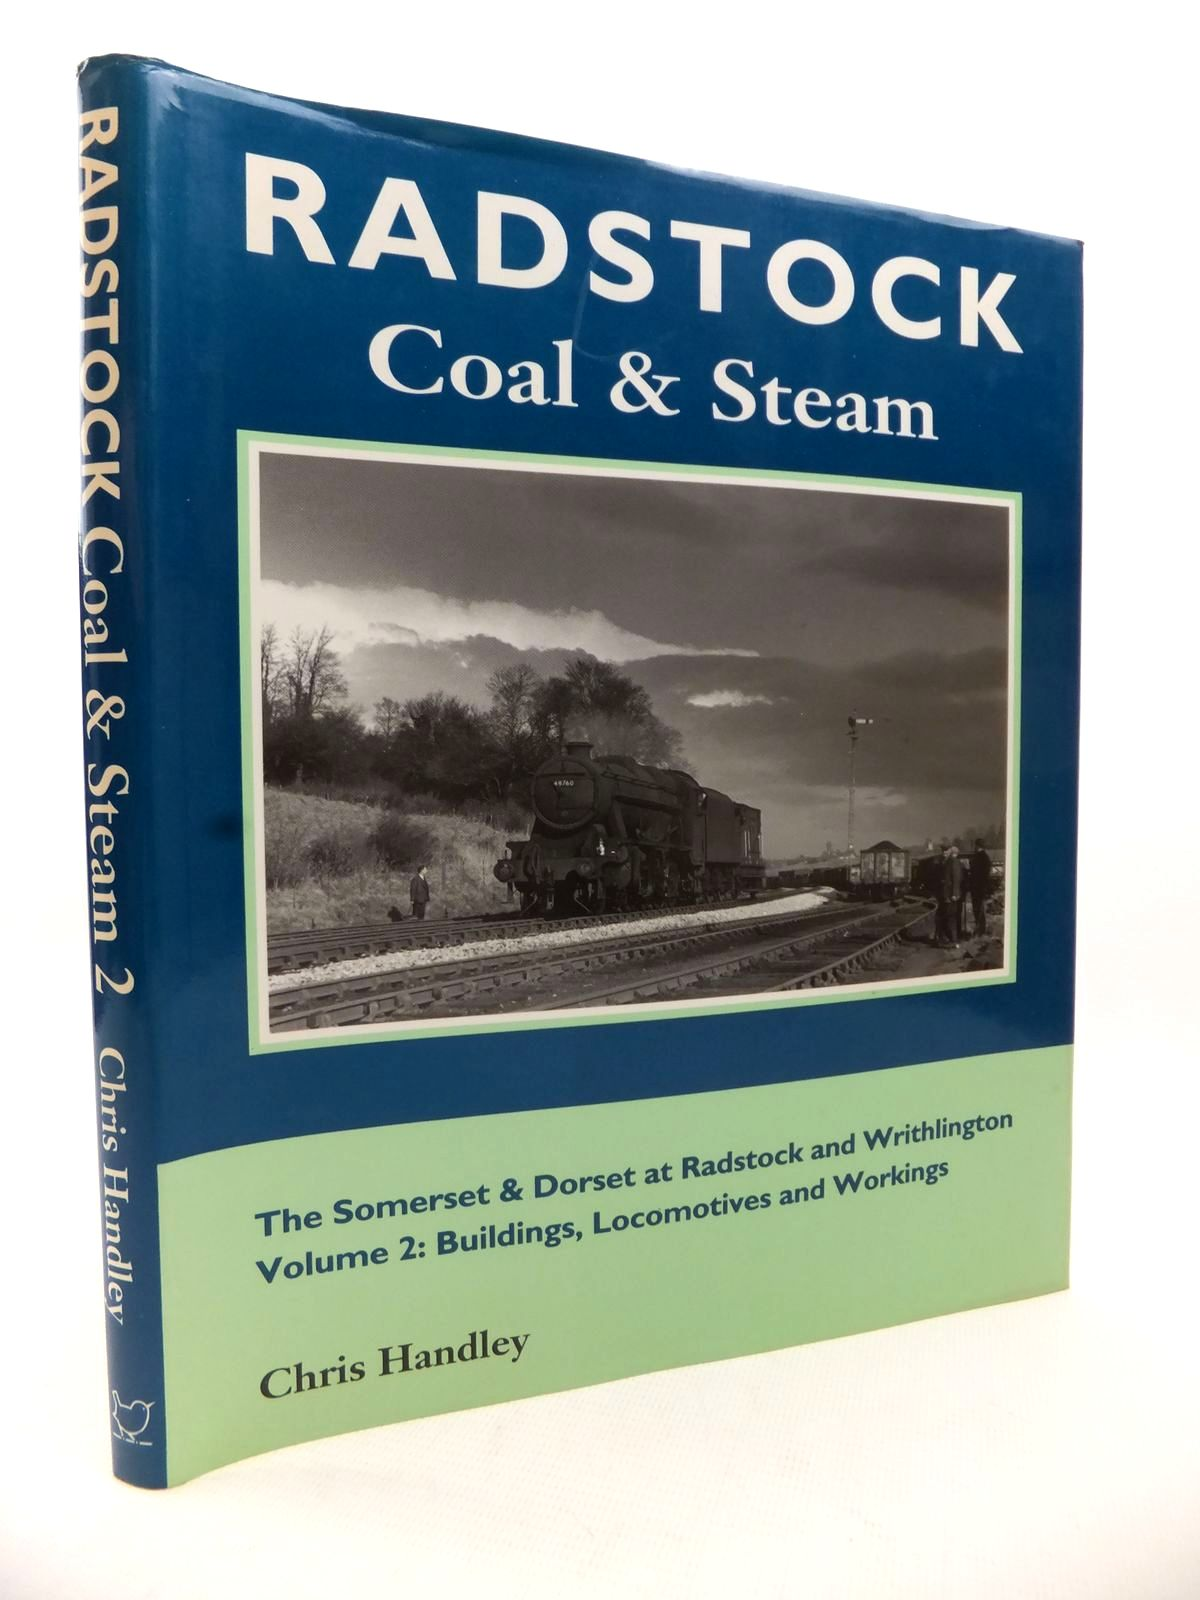 Photo of RADSTOCK COAL & STEAM. THE SOMERSET & DORSET AT RADSTOCK AND WRITHLINGTON VOLUME 2: BUILDINGS, LOCOMOTIVES AND WORKINGS